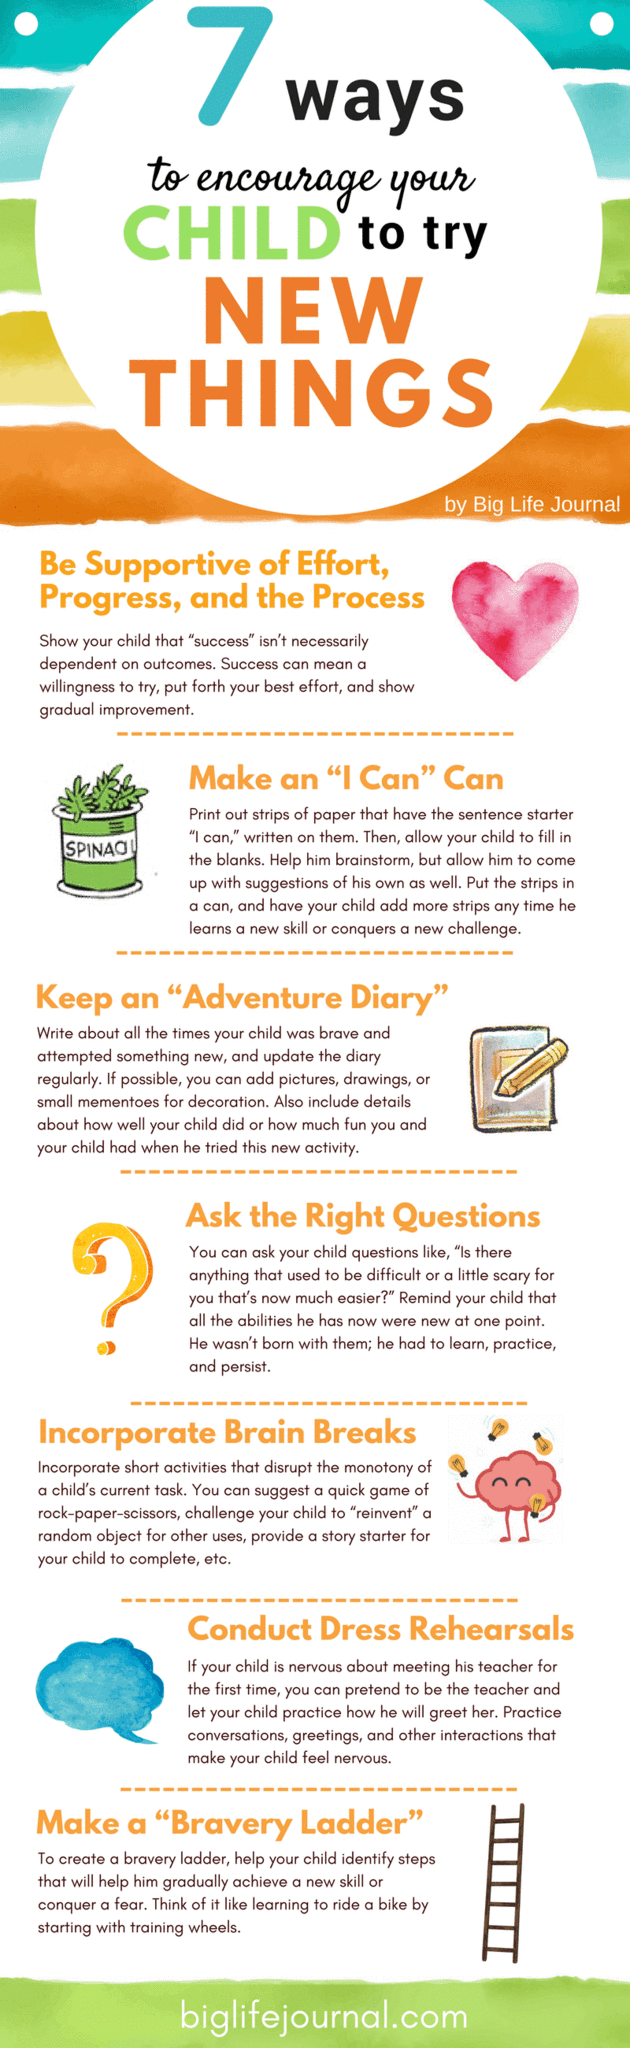 Ways to Encourage Your Child to Try New Things